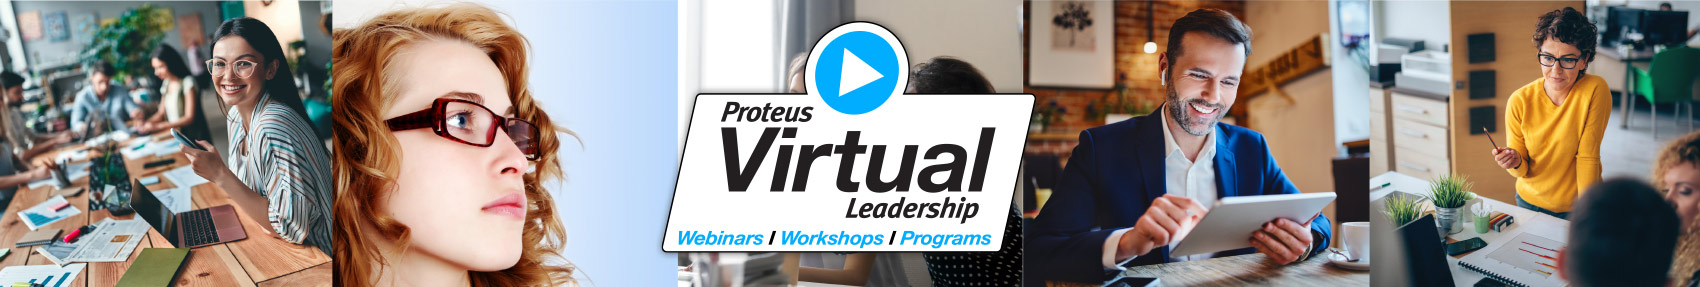 Proteus Leadership - 1 Day - Program Frenzy